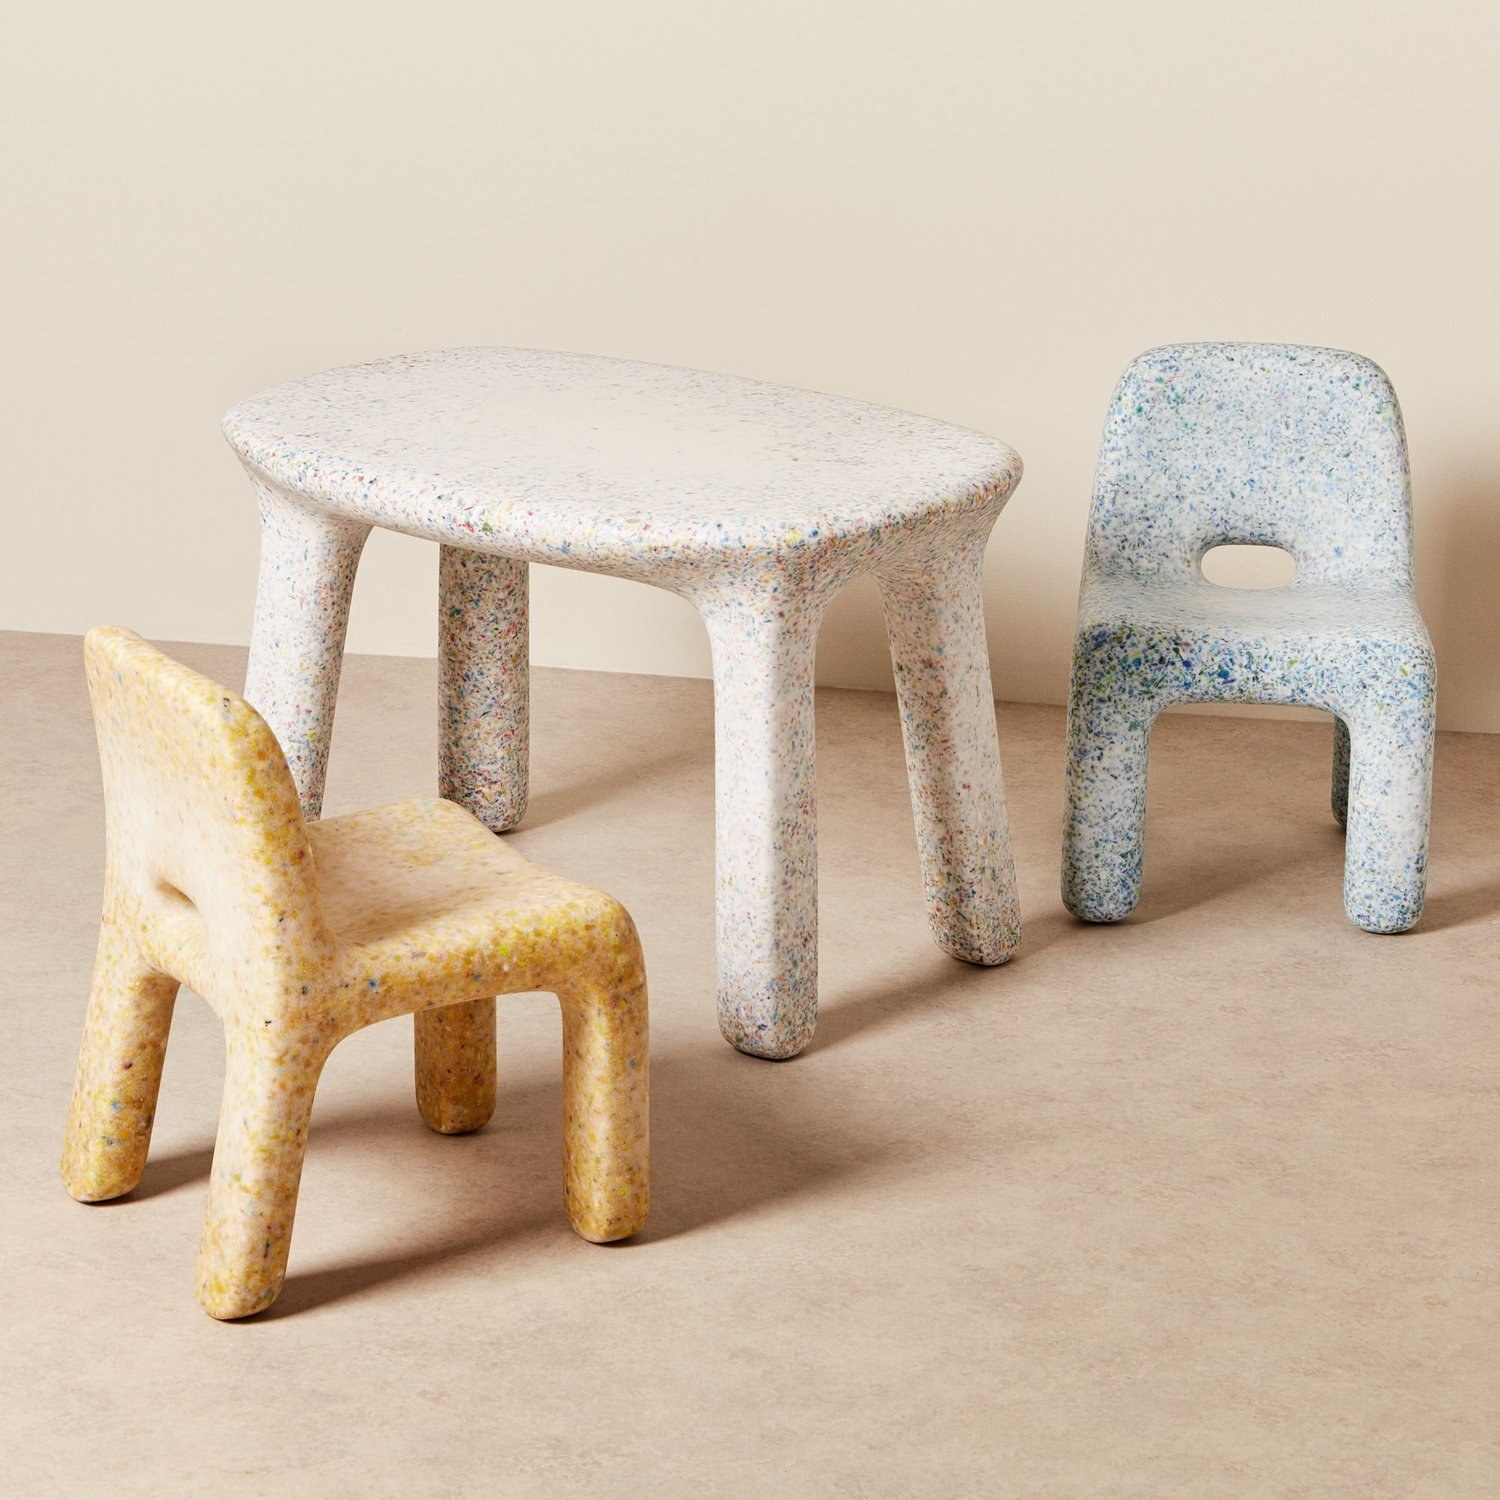 speckled desk and chairs that have a sort of rounded look as if they were left in the ocean for many years